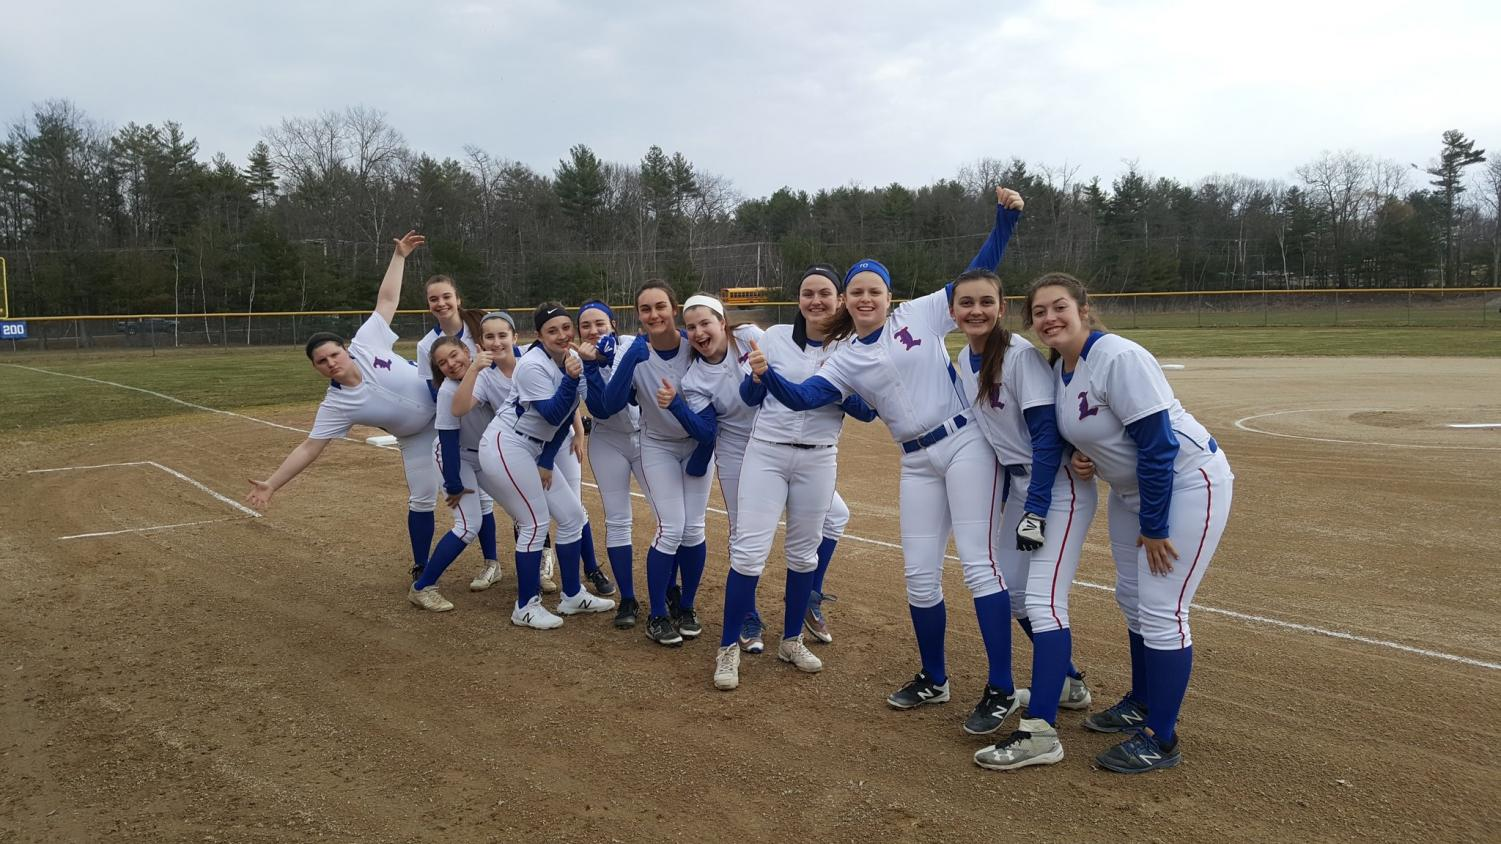 The girls softball team gathering together for a picture at home plate before a home match.